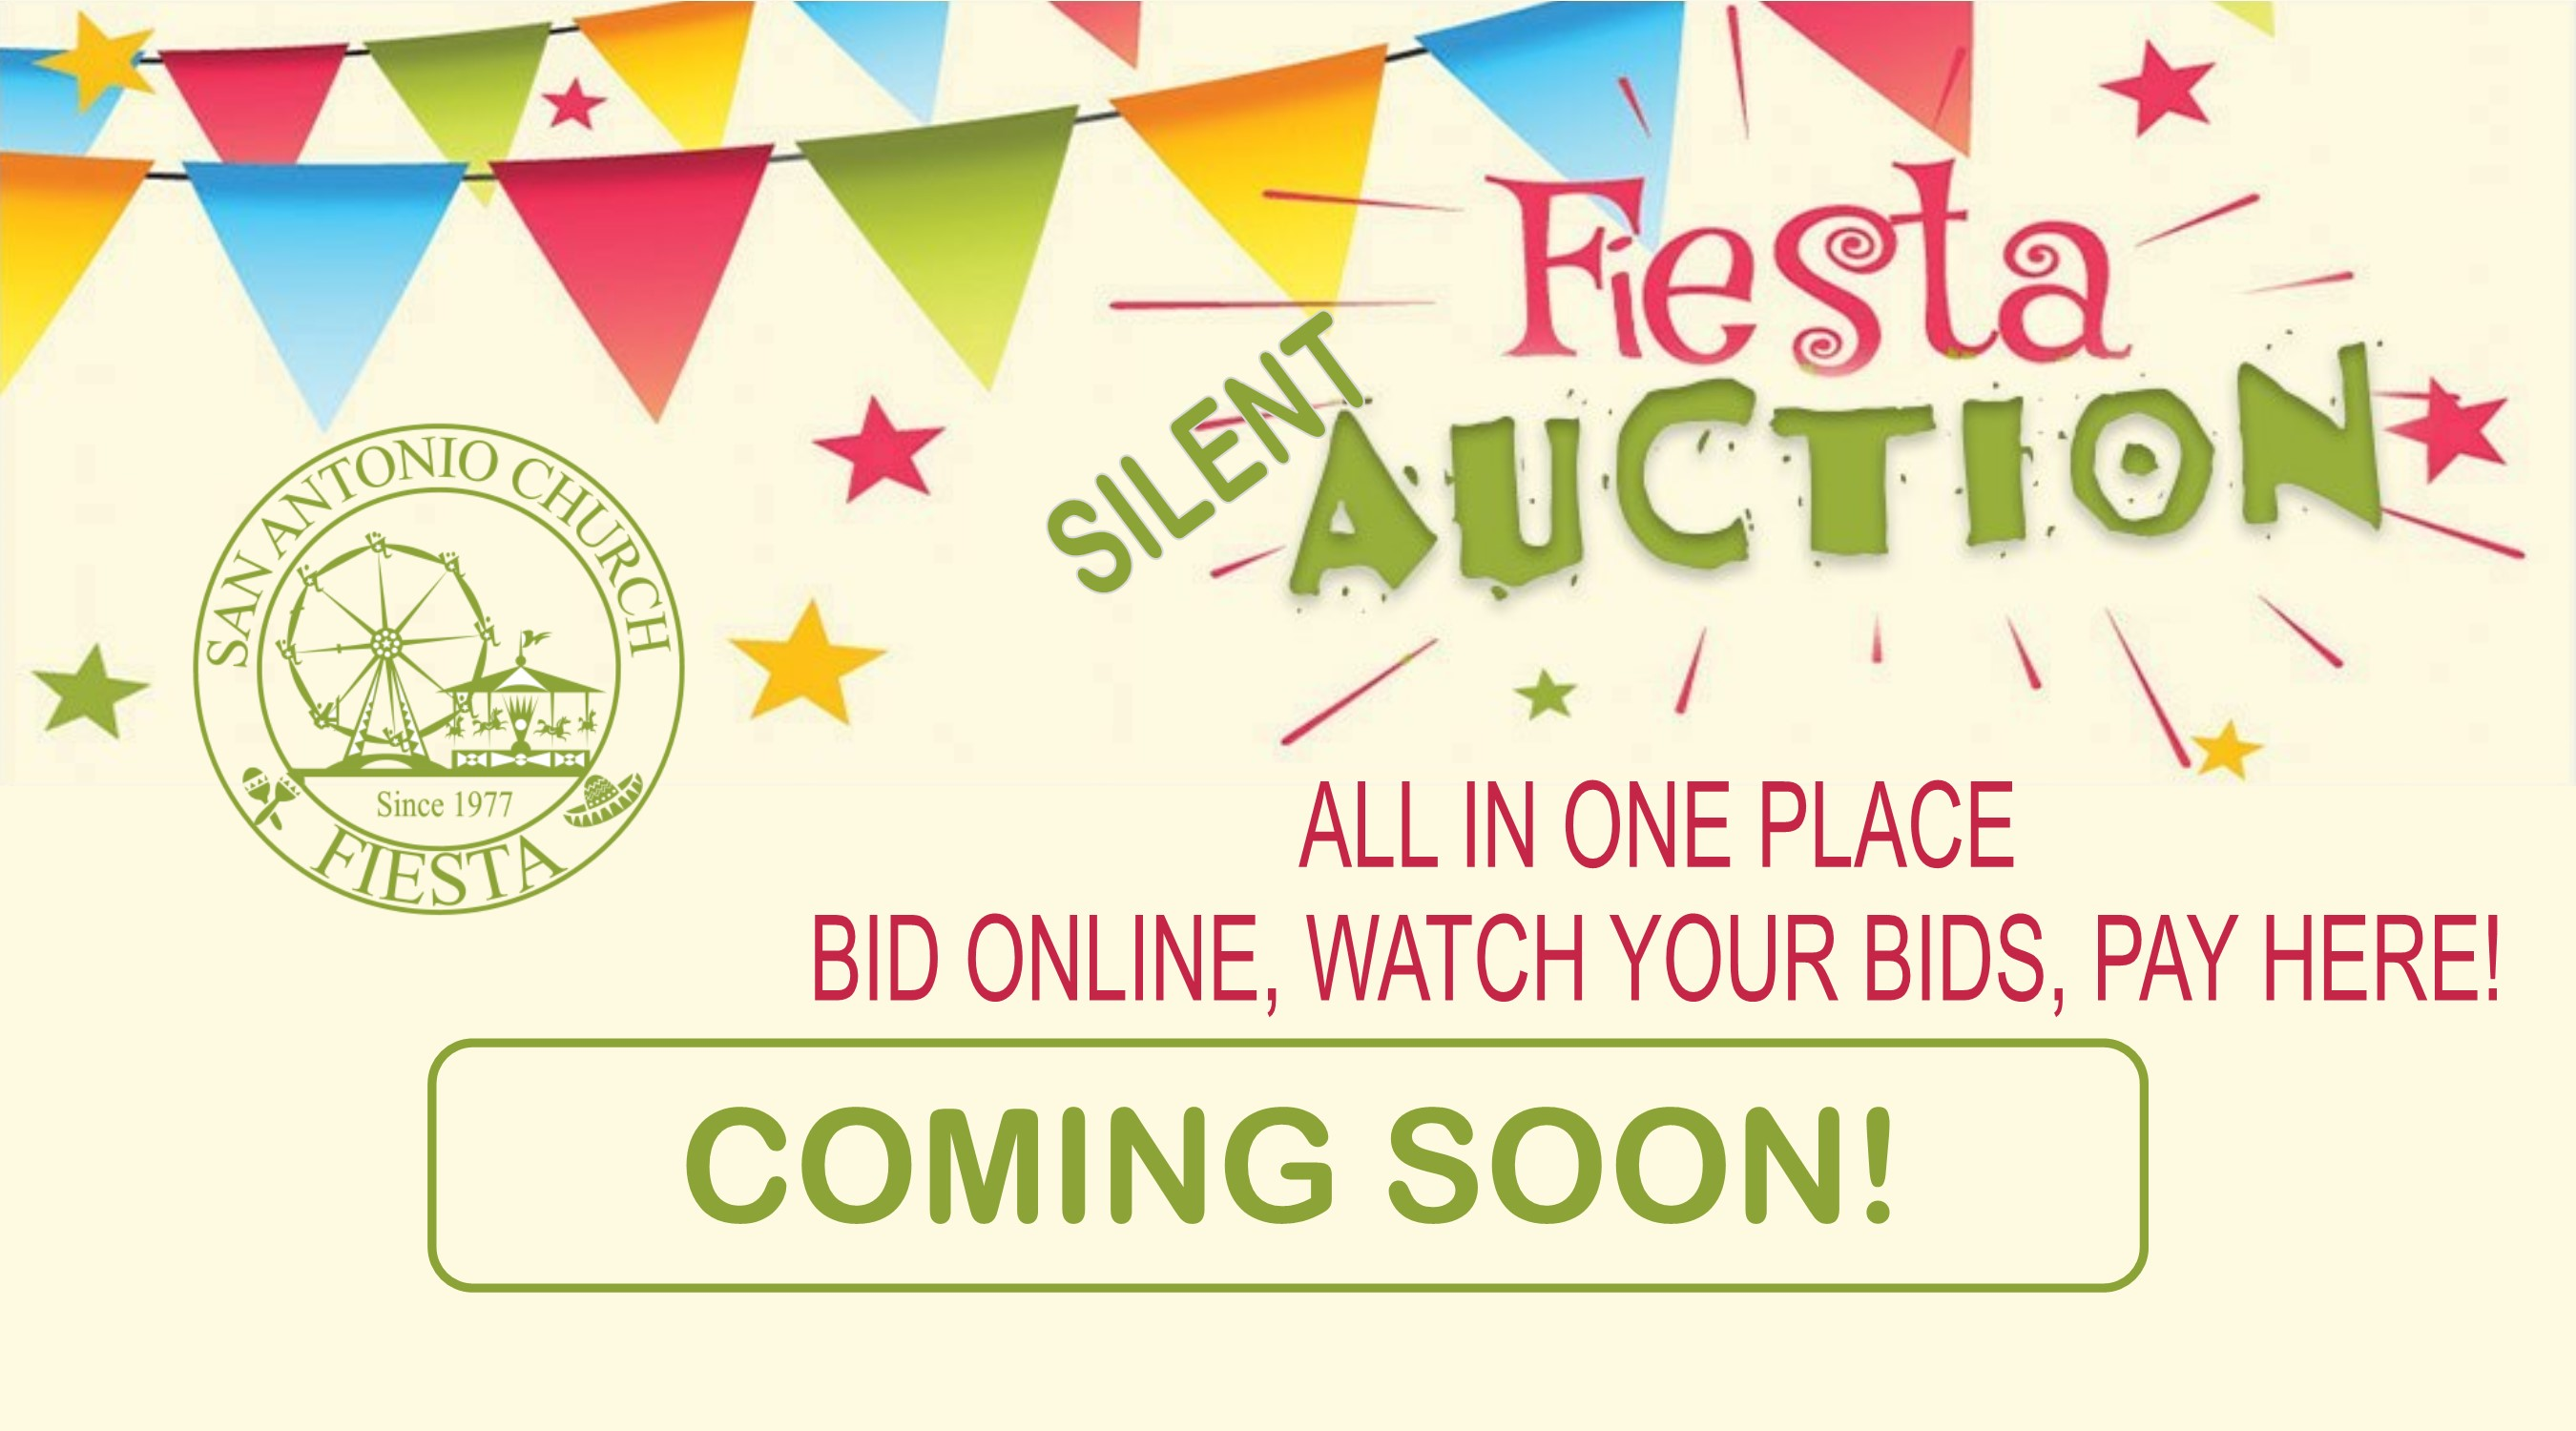 Silent Auction Coming Soon